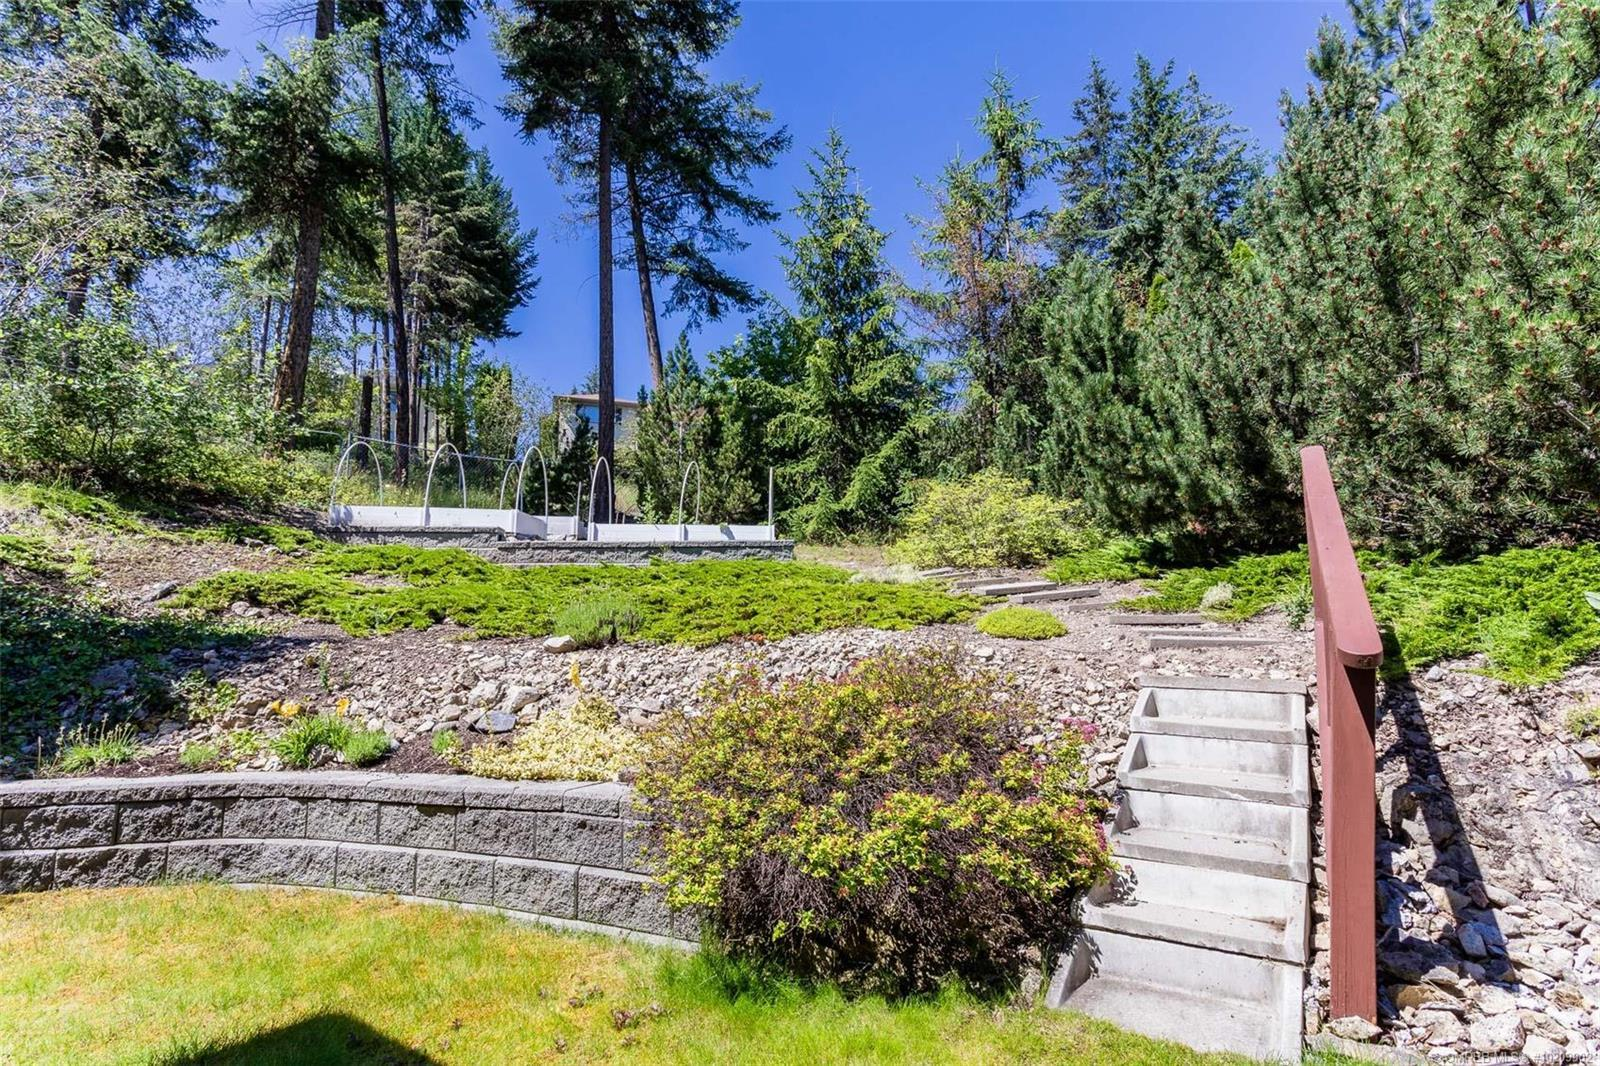 Listing 10209902 - Thumbmnail Photo # 29